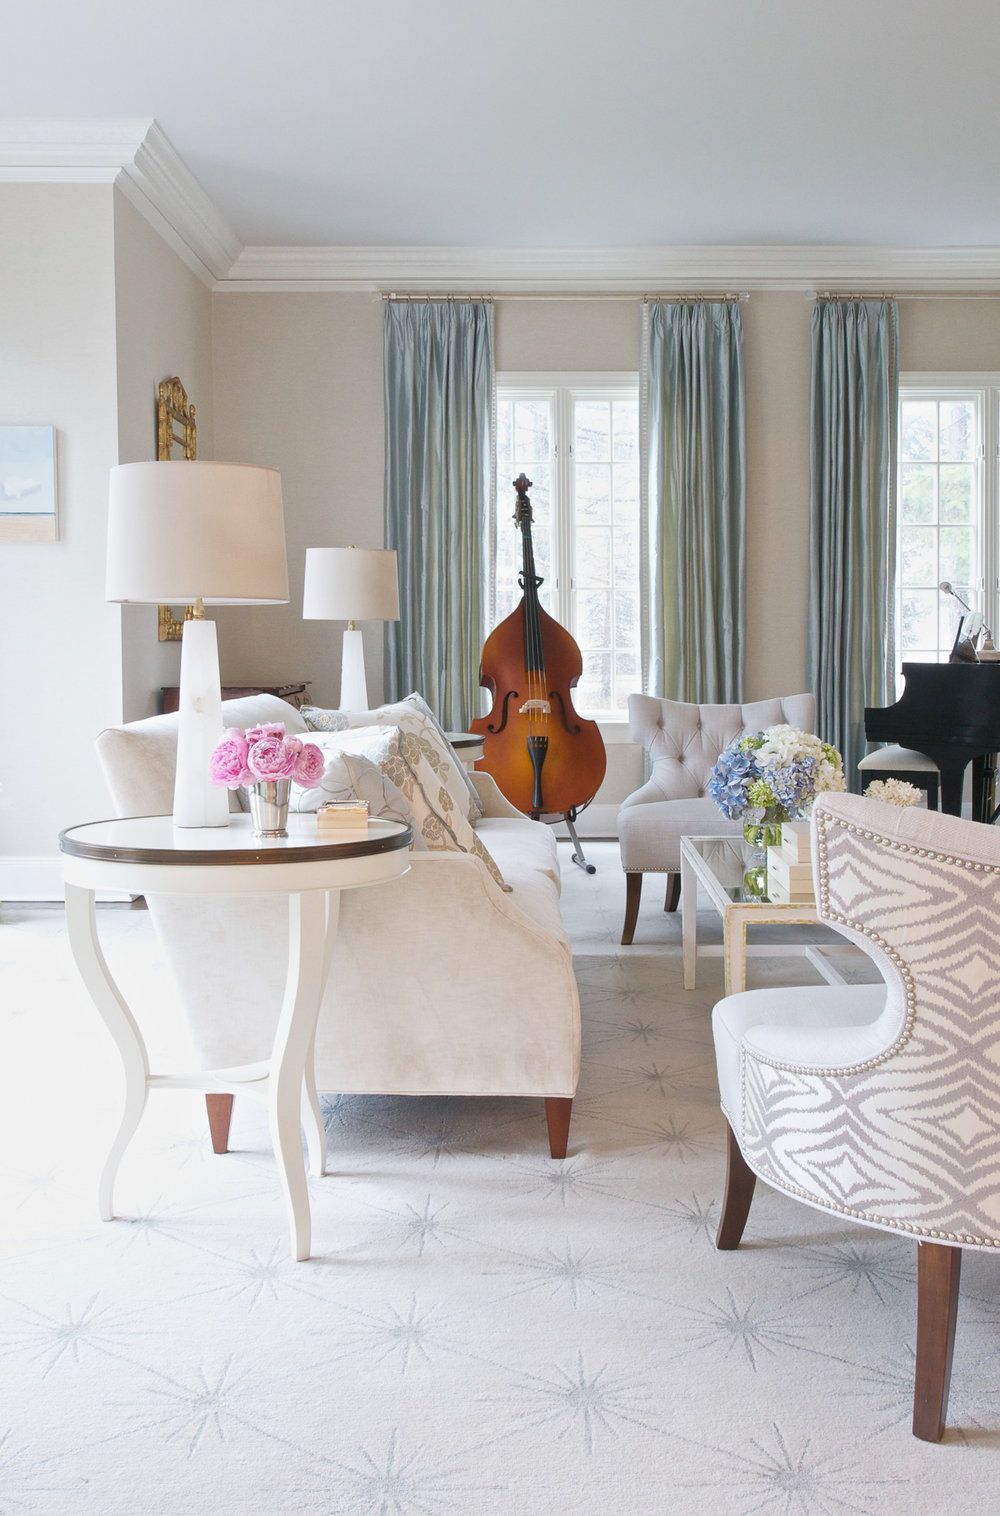 NEW CANAAN - NEW ELEGANCE